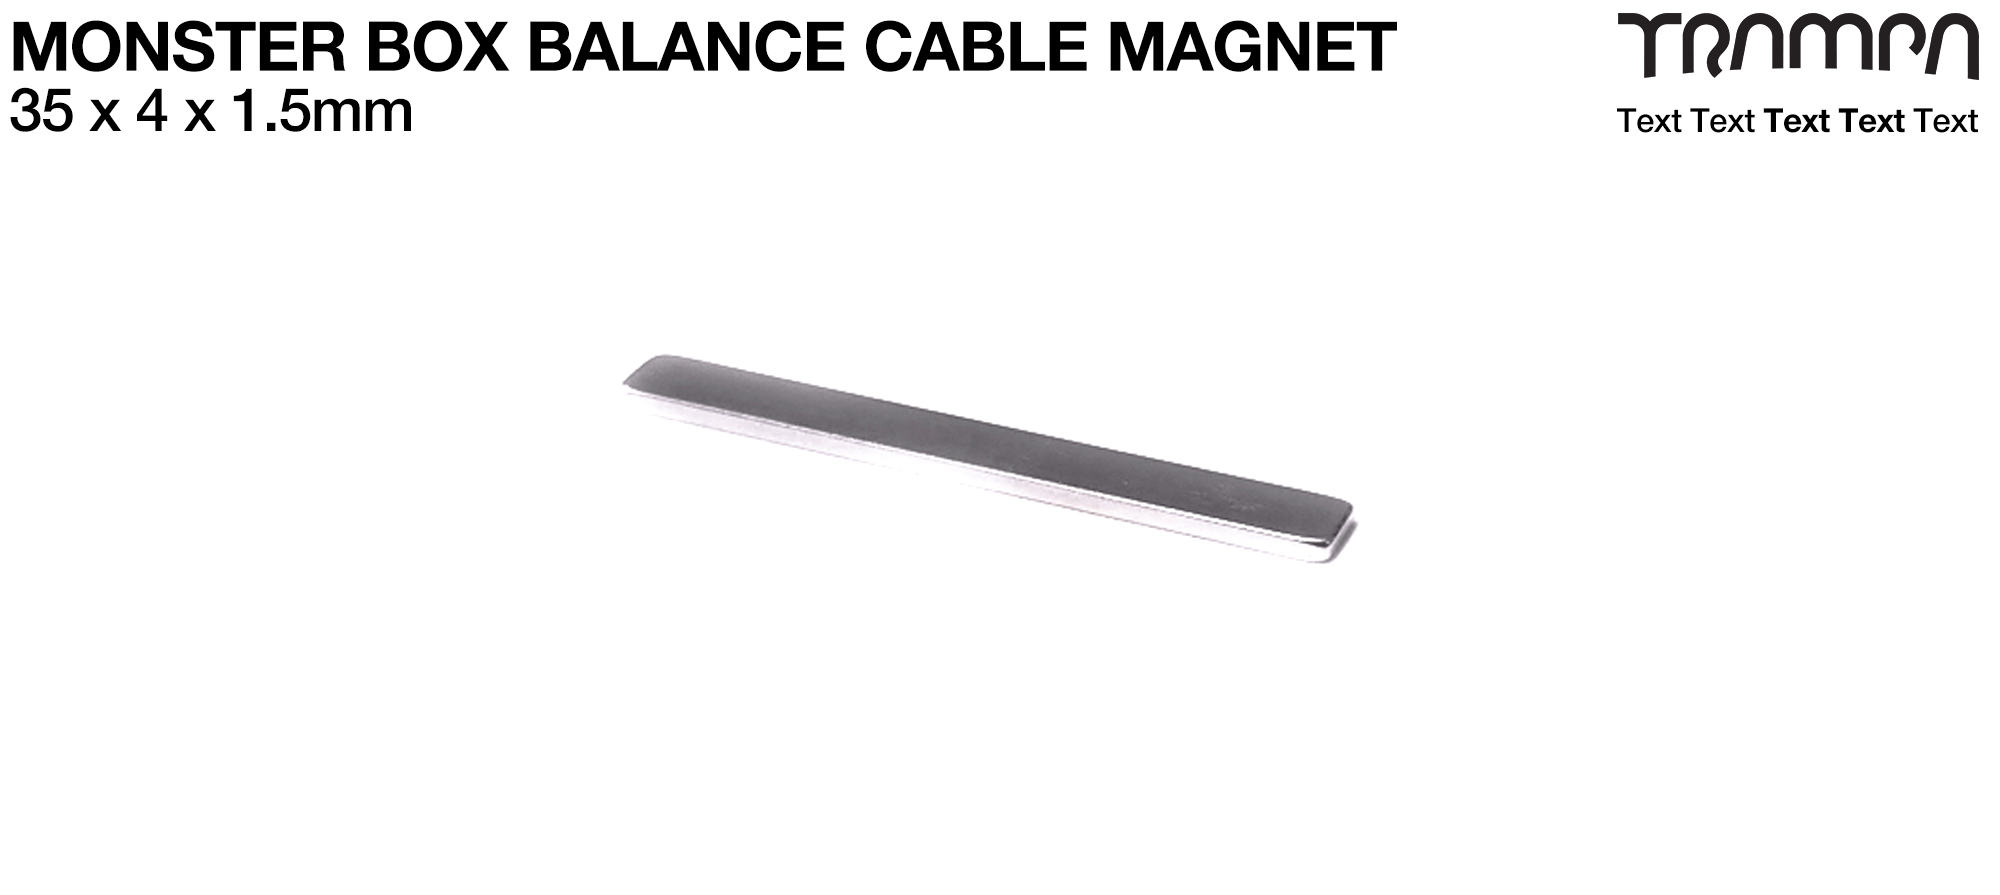 Magnet for Monster Box Balance cables protection 30x 4x 1.5mm N